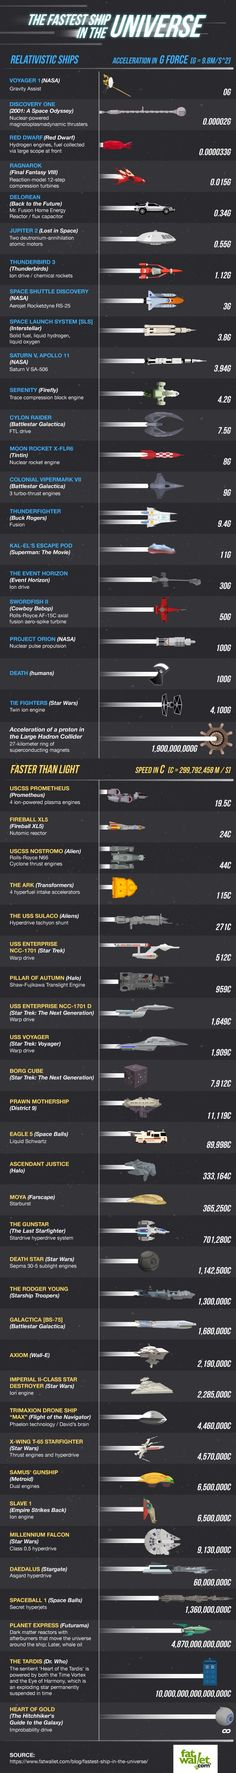 The Fastest Ship in the Universe : How Sci-Fi Ships Stack Up: